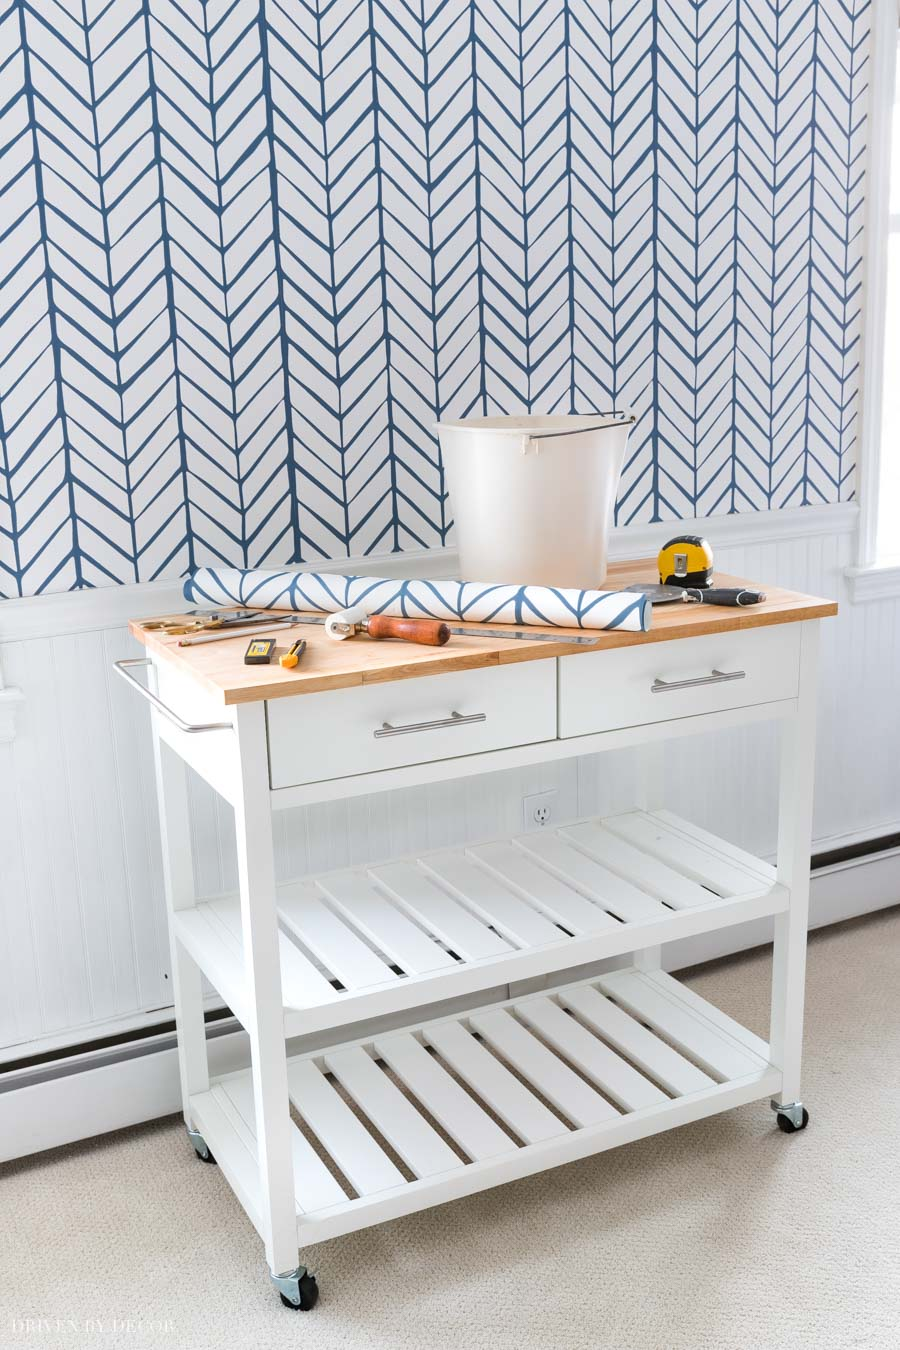 This rolling kitchen cart is so helpful for holding supplies while wallpapering or painting!